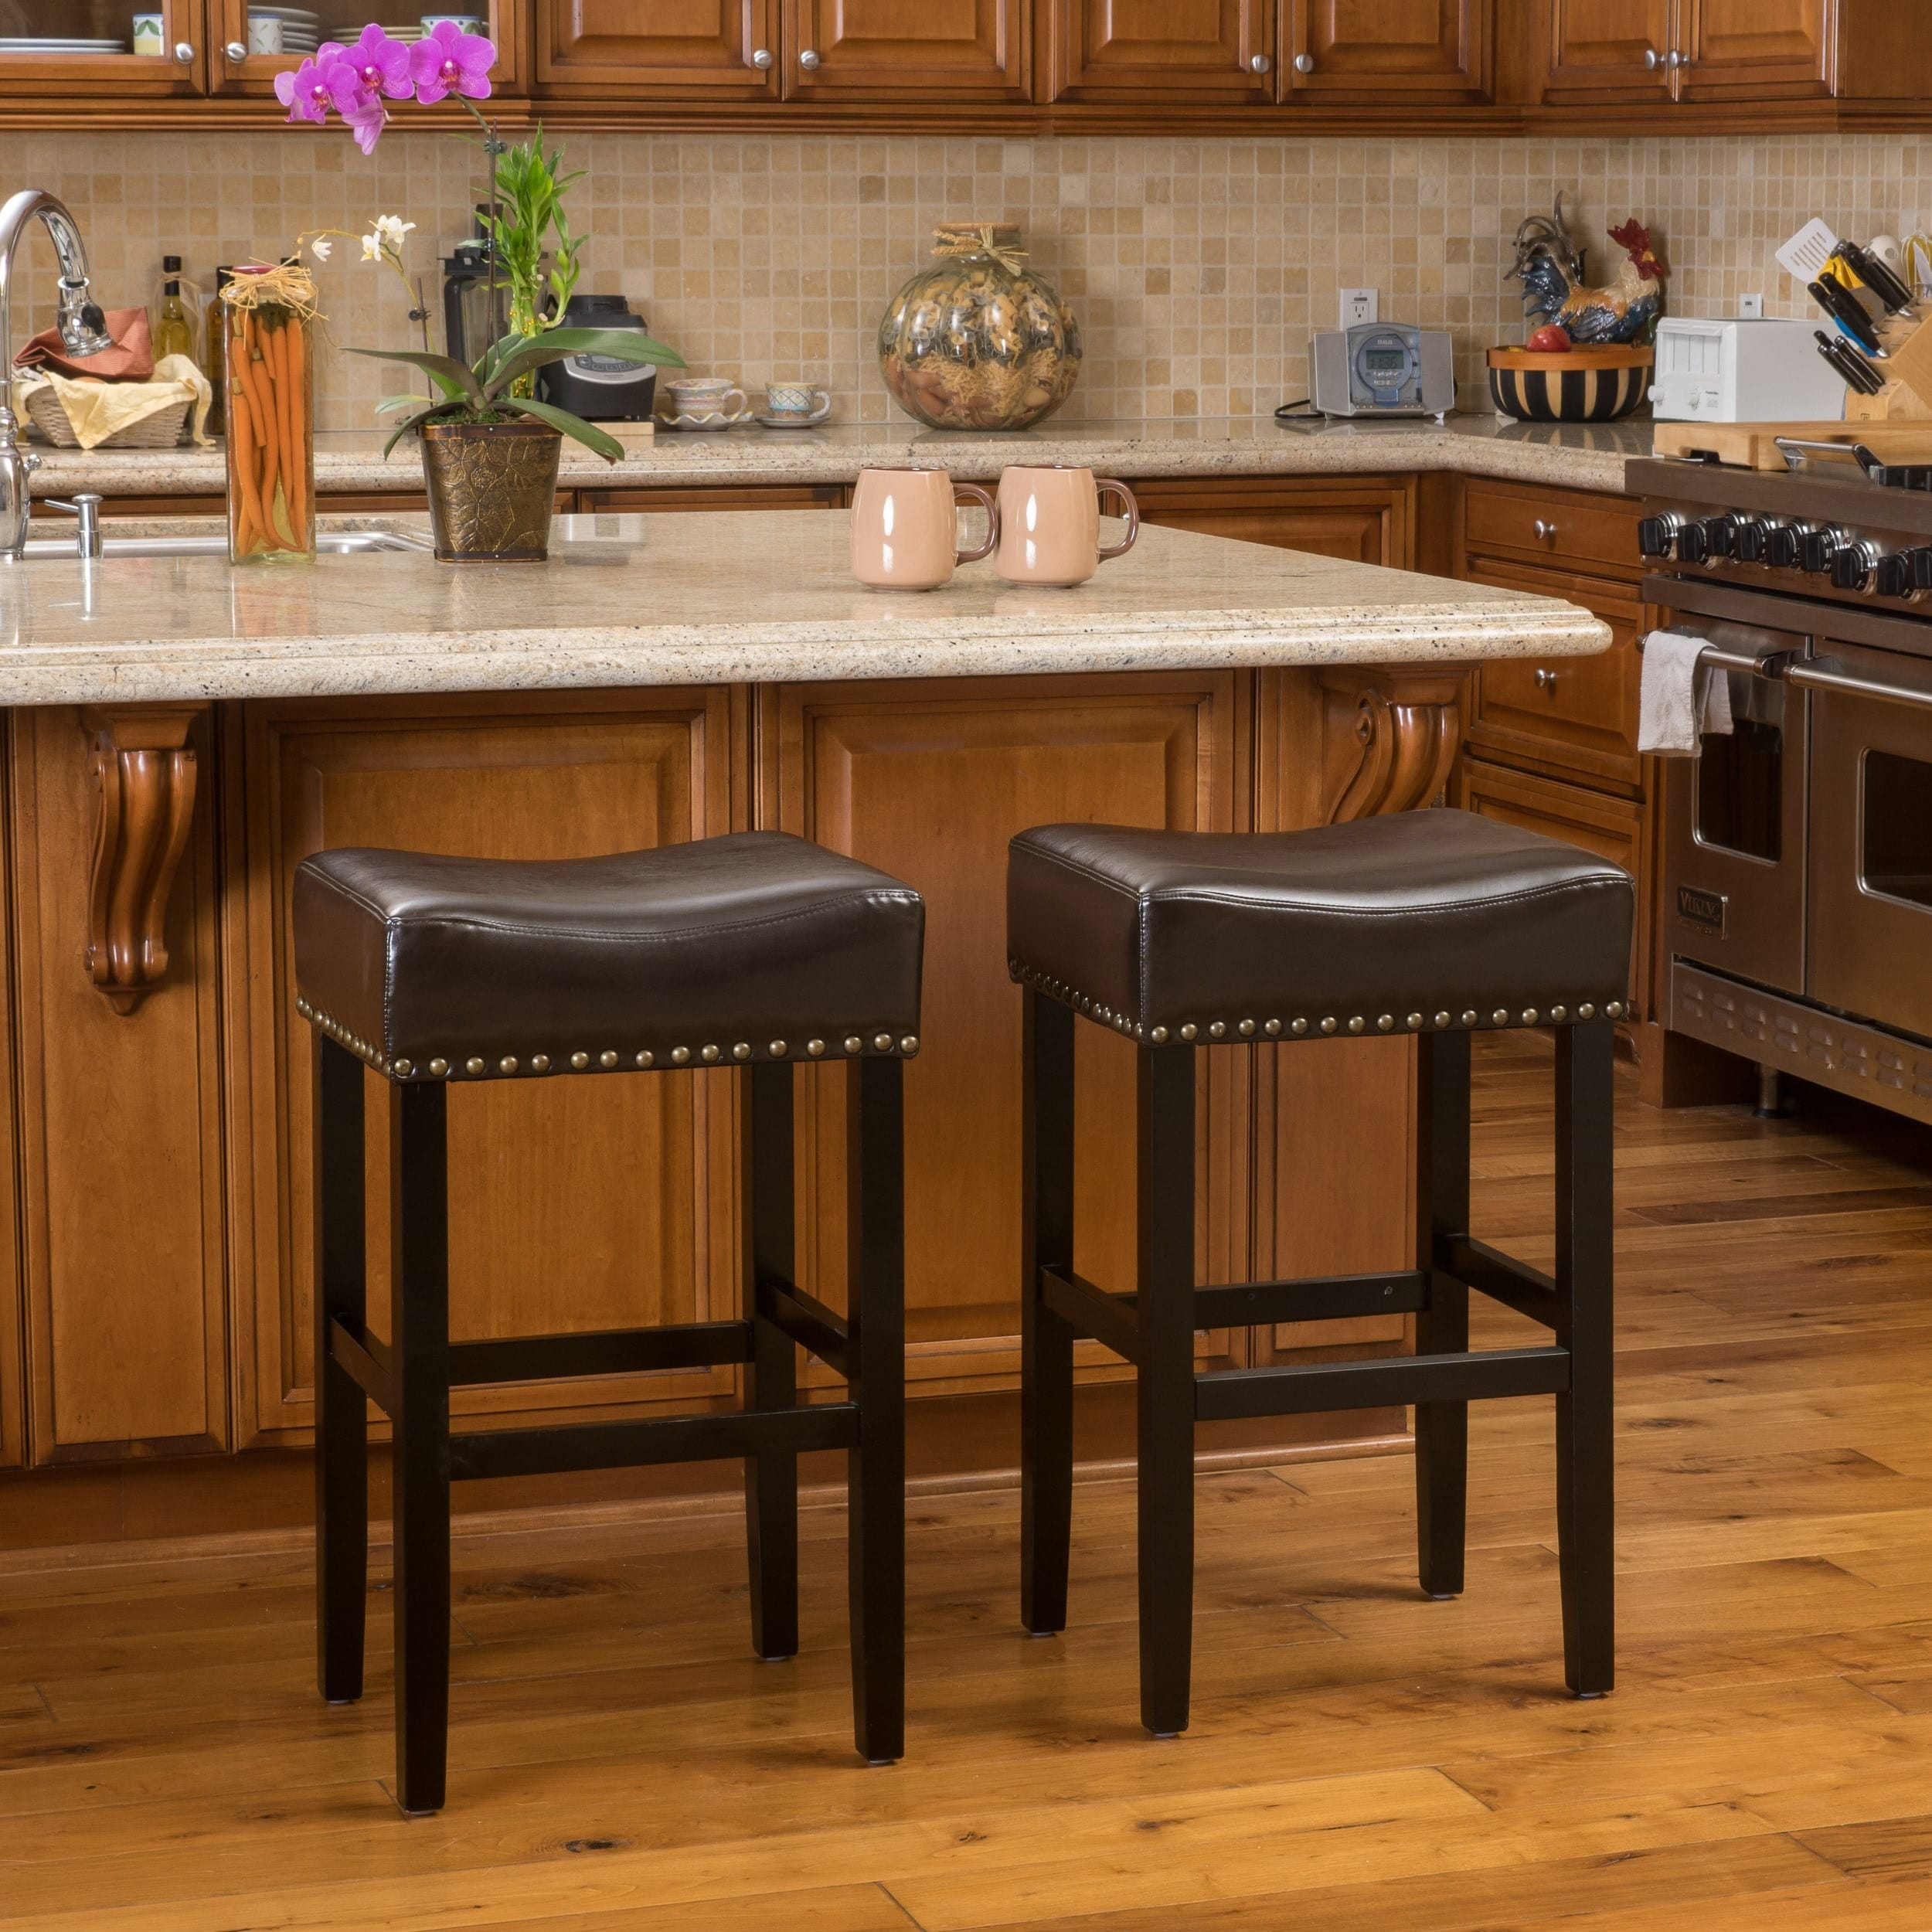 http://ak1.ostkcdn.com/images/products/8630860/Christopher-Knight-Home-Louigi-Brown-Backless-Leather-Bar-Stool-Set-of-2-L15895065.jpg